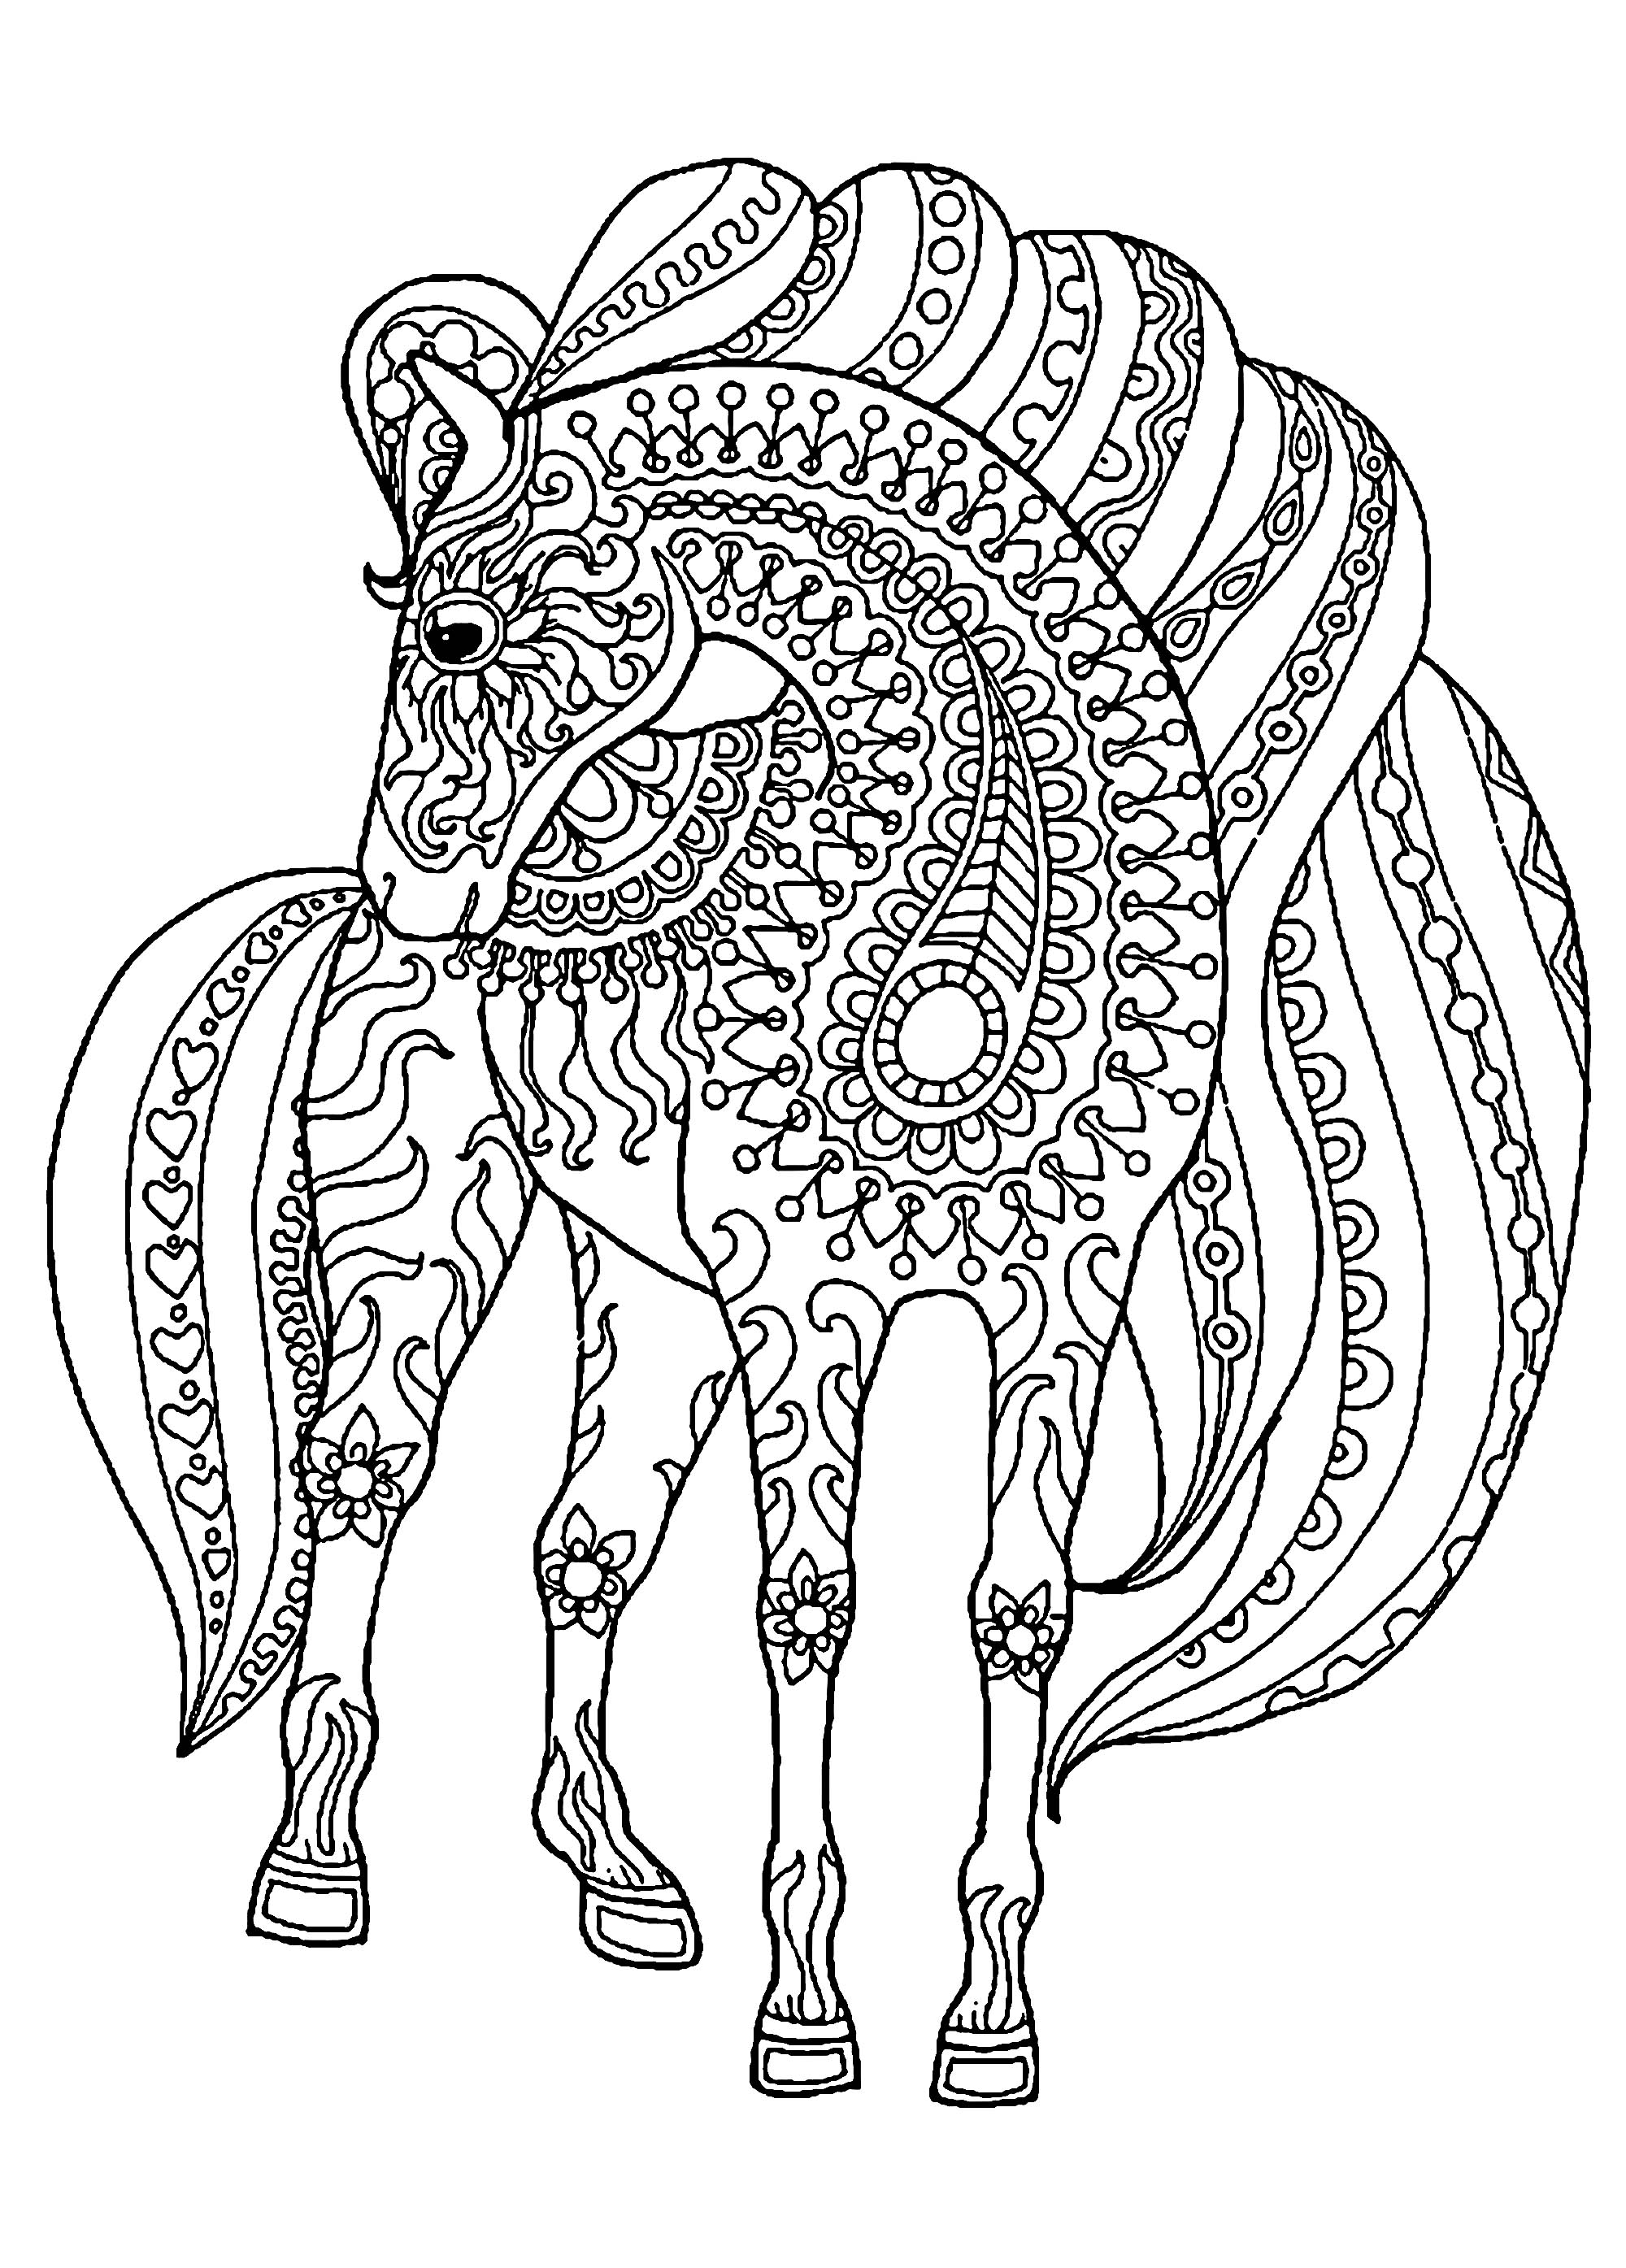 kids horse coloring pages horse coloring pages for kids coloring pages for kids kids pages horse coloring